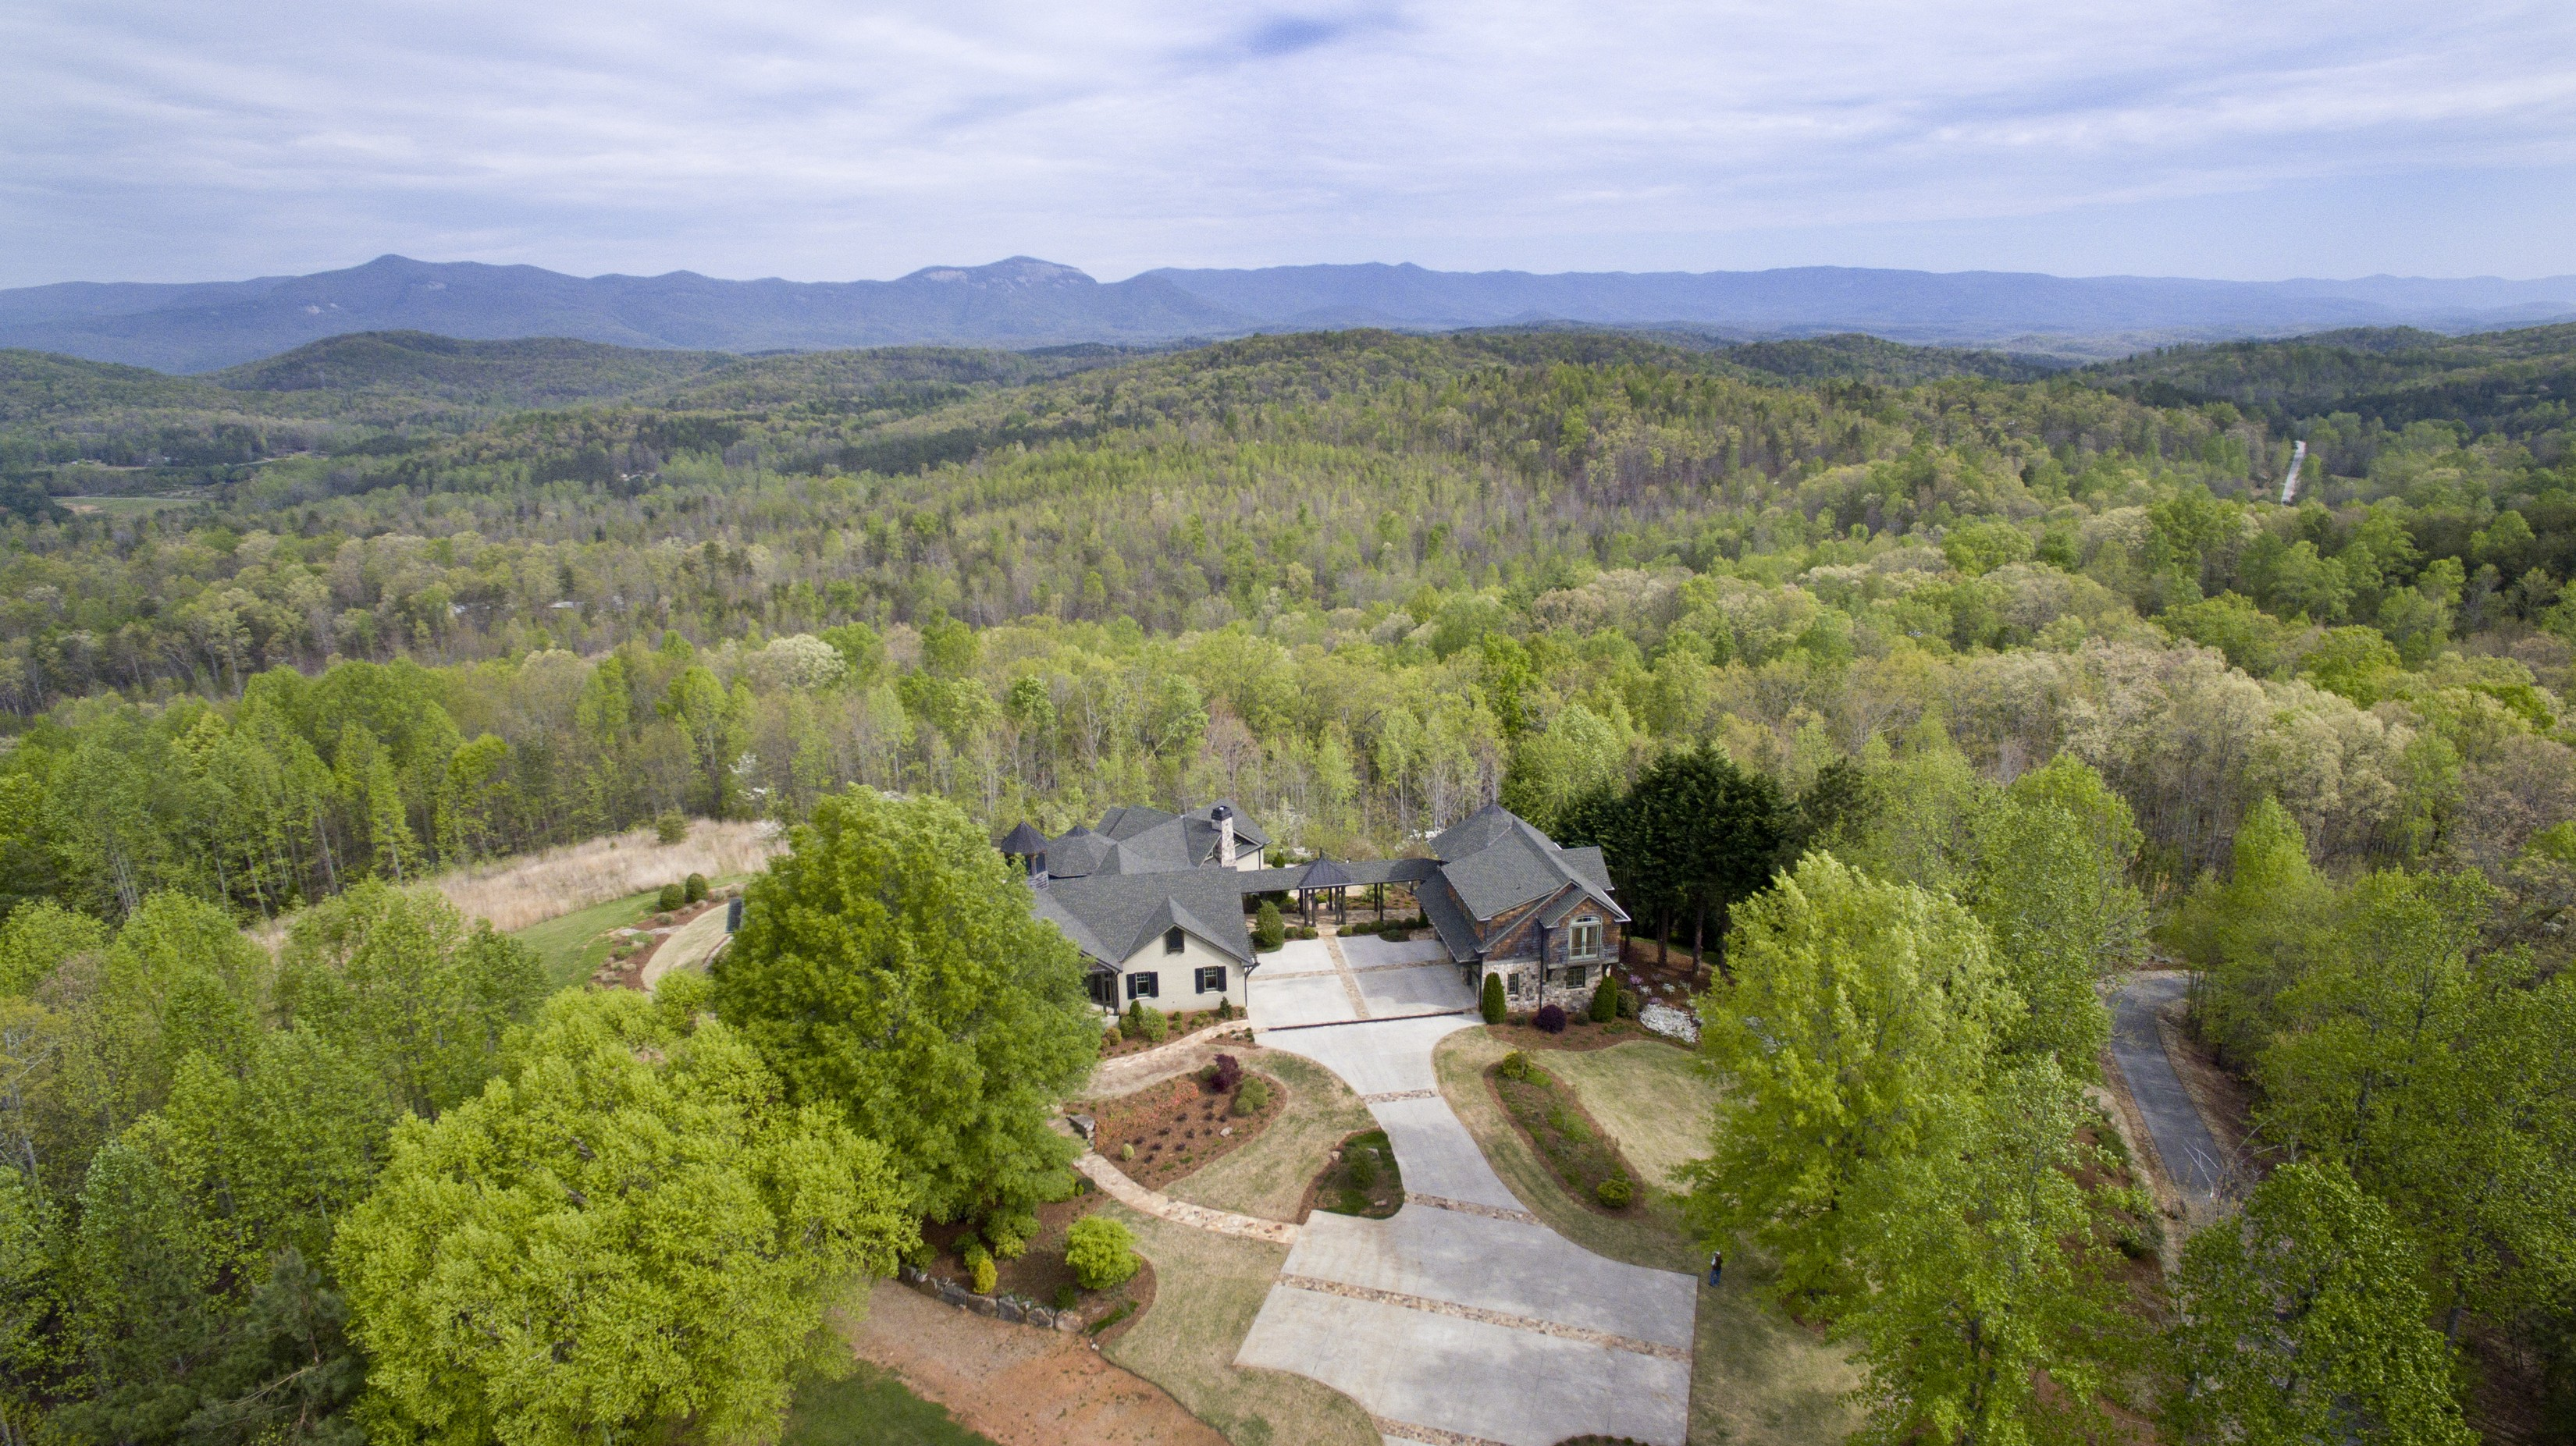 Single Family Home for Sale at Unparalleled Mountaintop Estate in the Foothills of the Blue Ridge 174 Chestnut Oaks Drive Pickens, South Carolina, 29671 United States